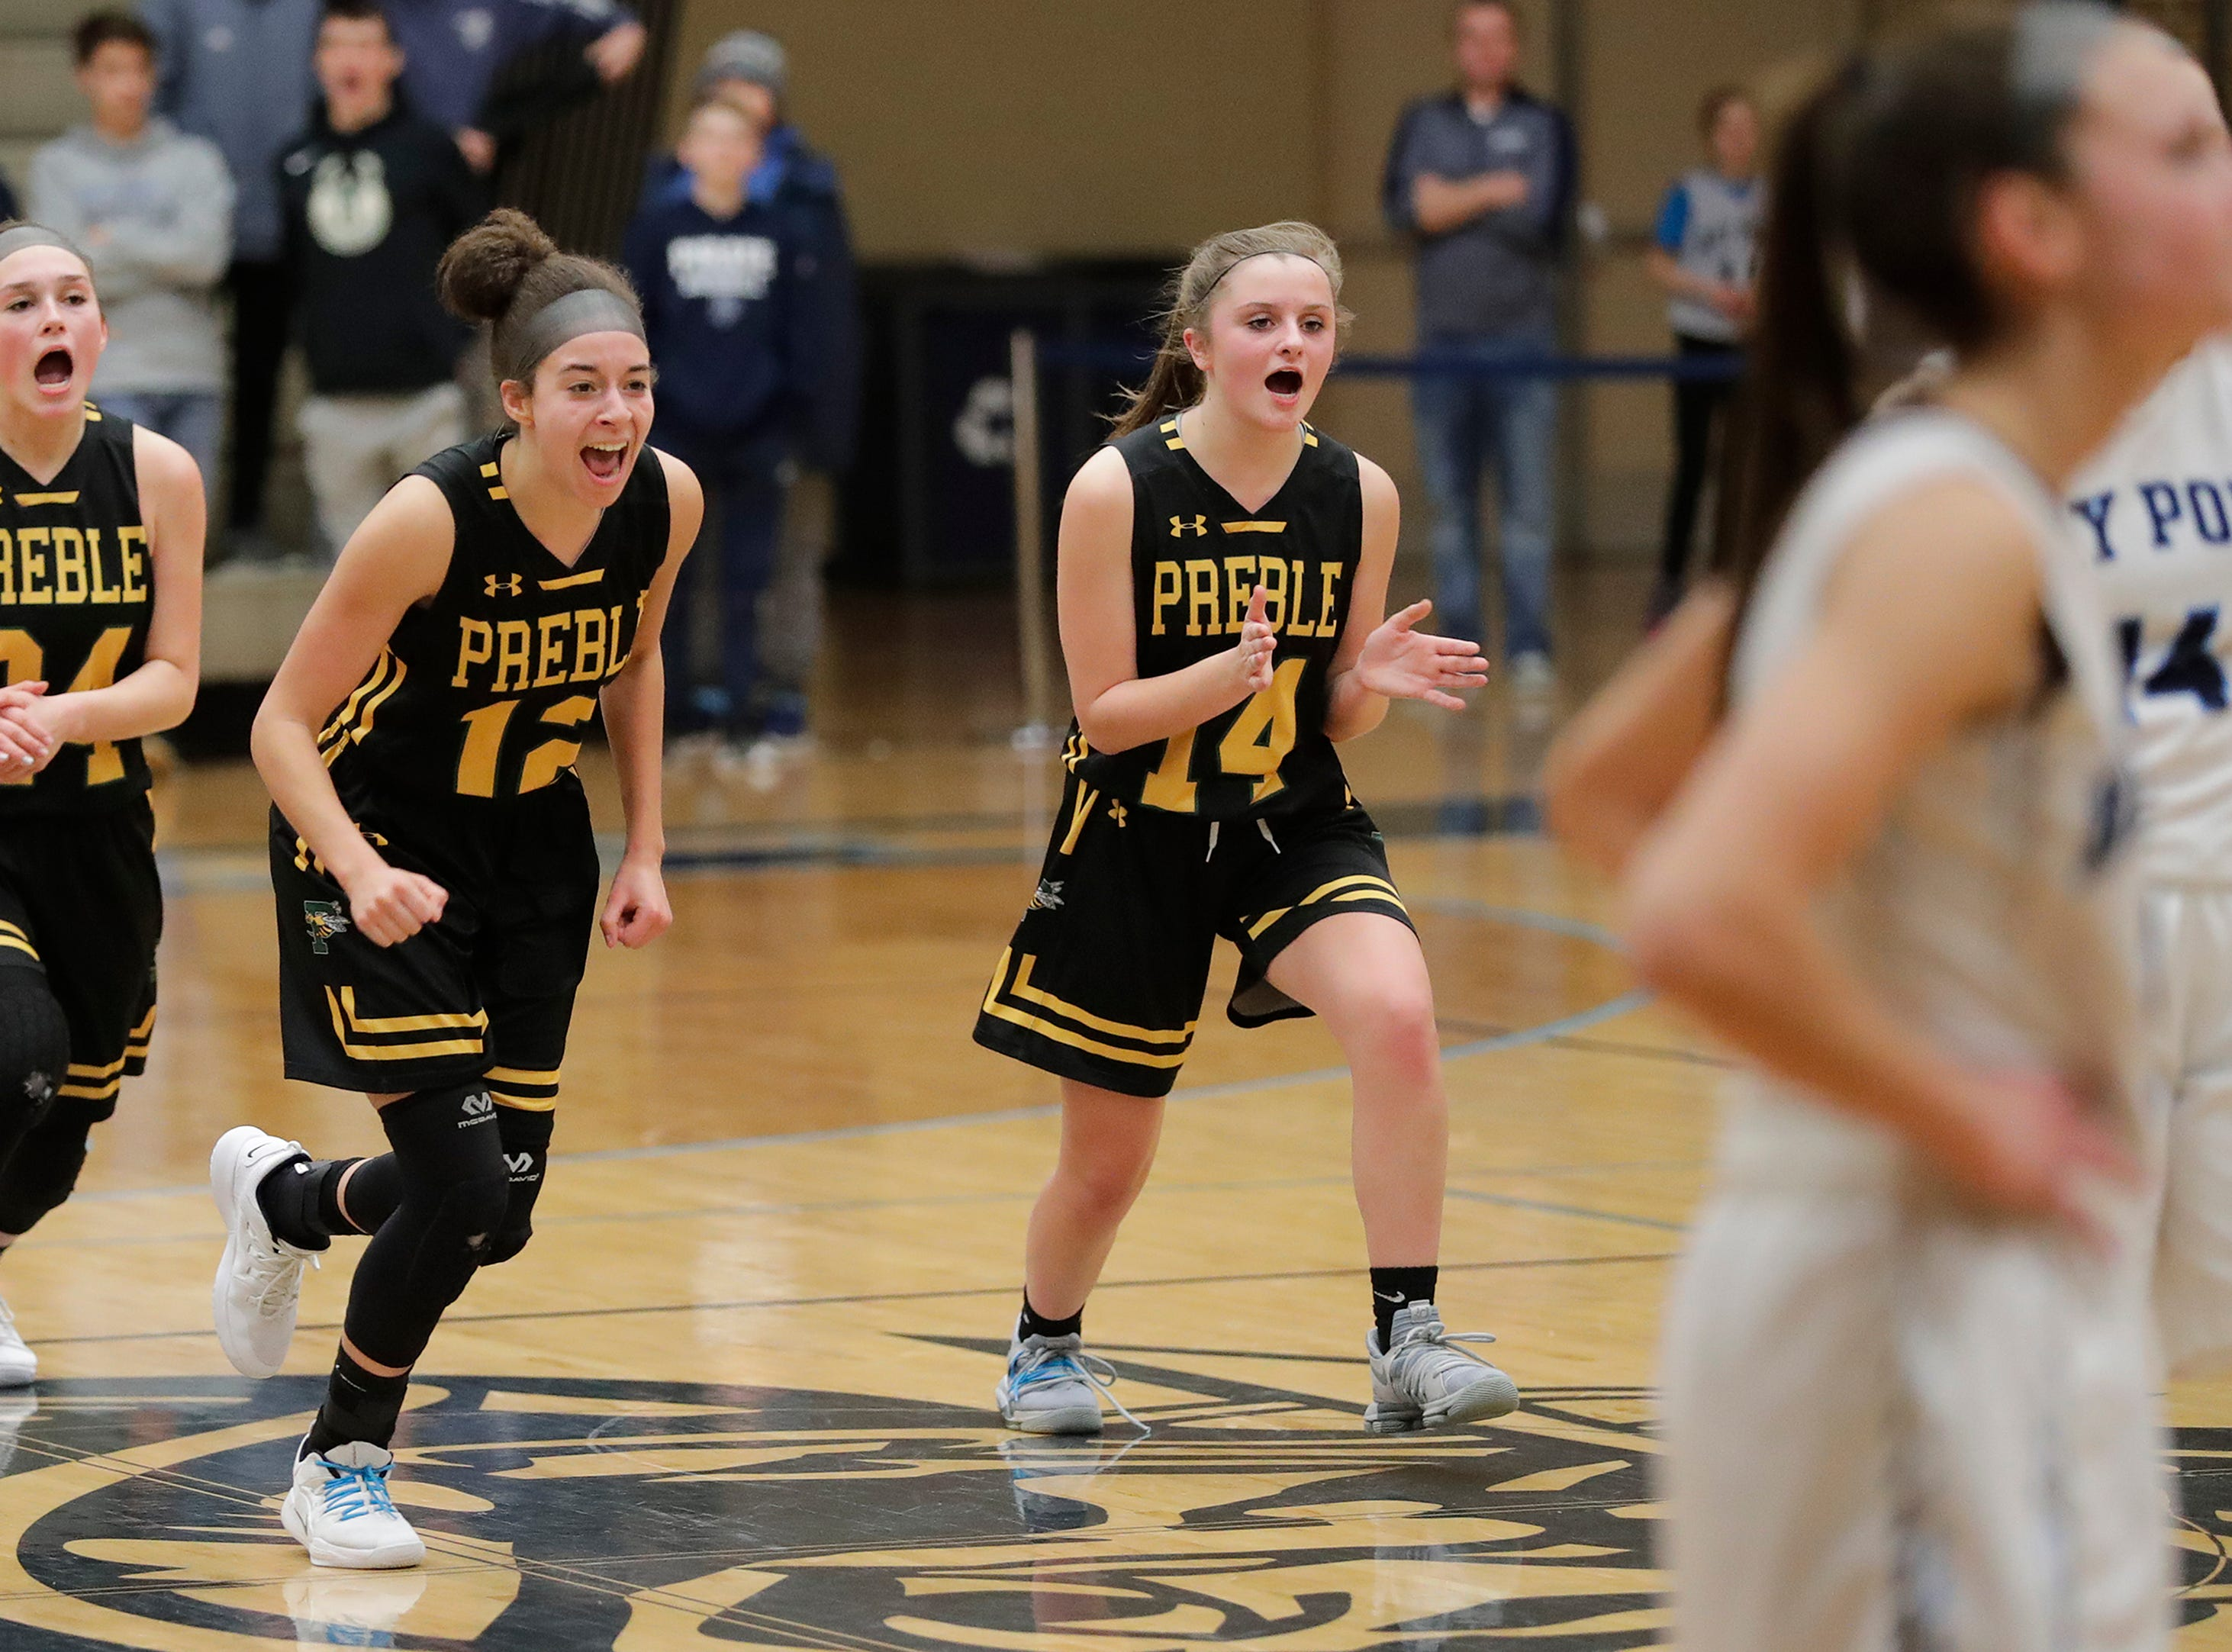 Green Bay Preble players celebrate a made free throw in the final minute against Bay Port in an FRCC girls basketball game at Bay Port high school on Friday, February 8, 2019 in Suamico, Wis.